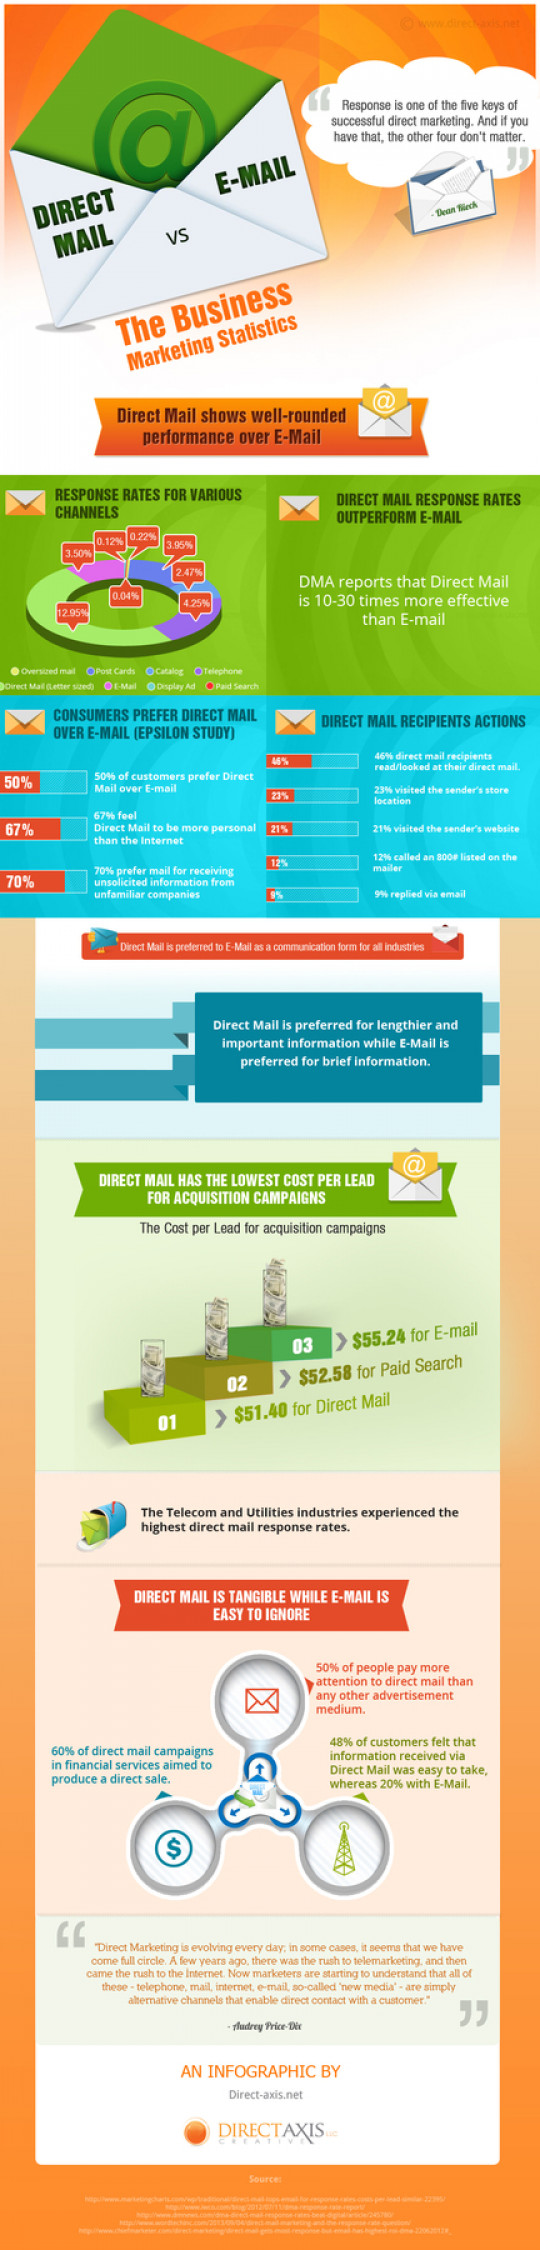 Direct Mail v. Email Marketing Statistics